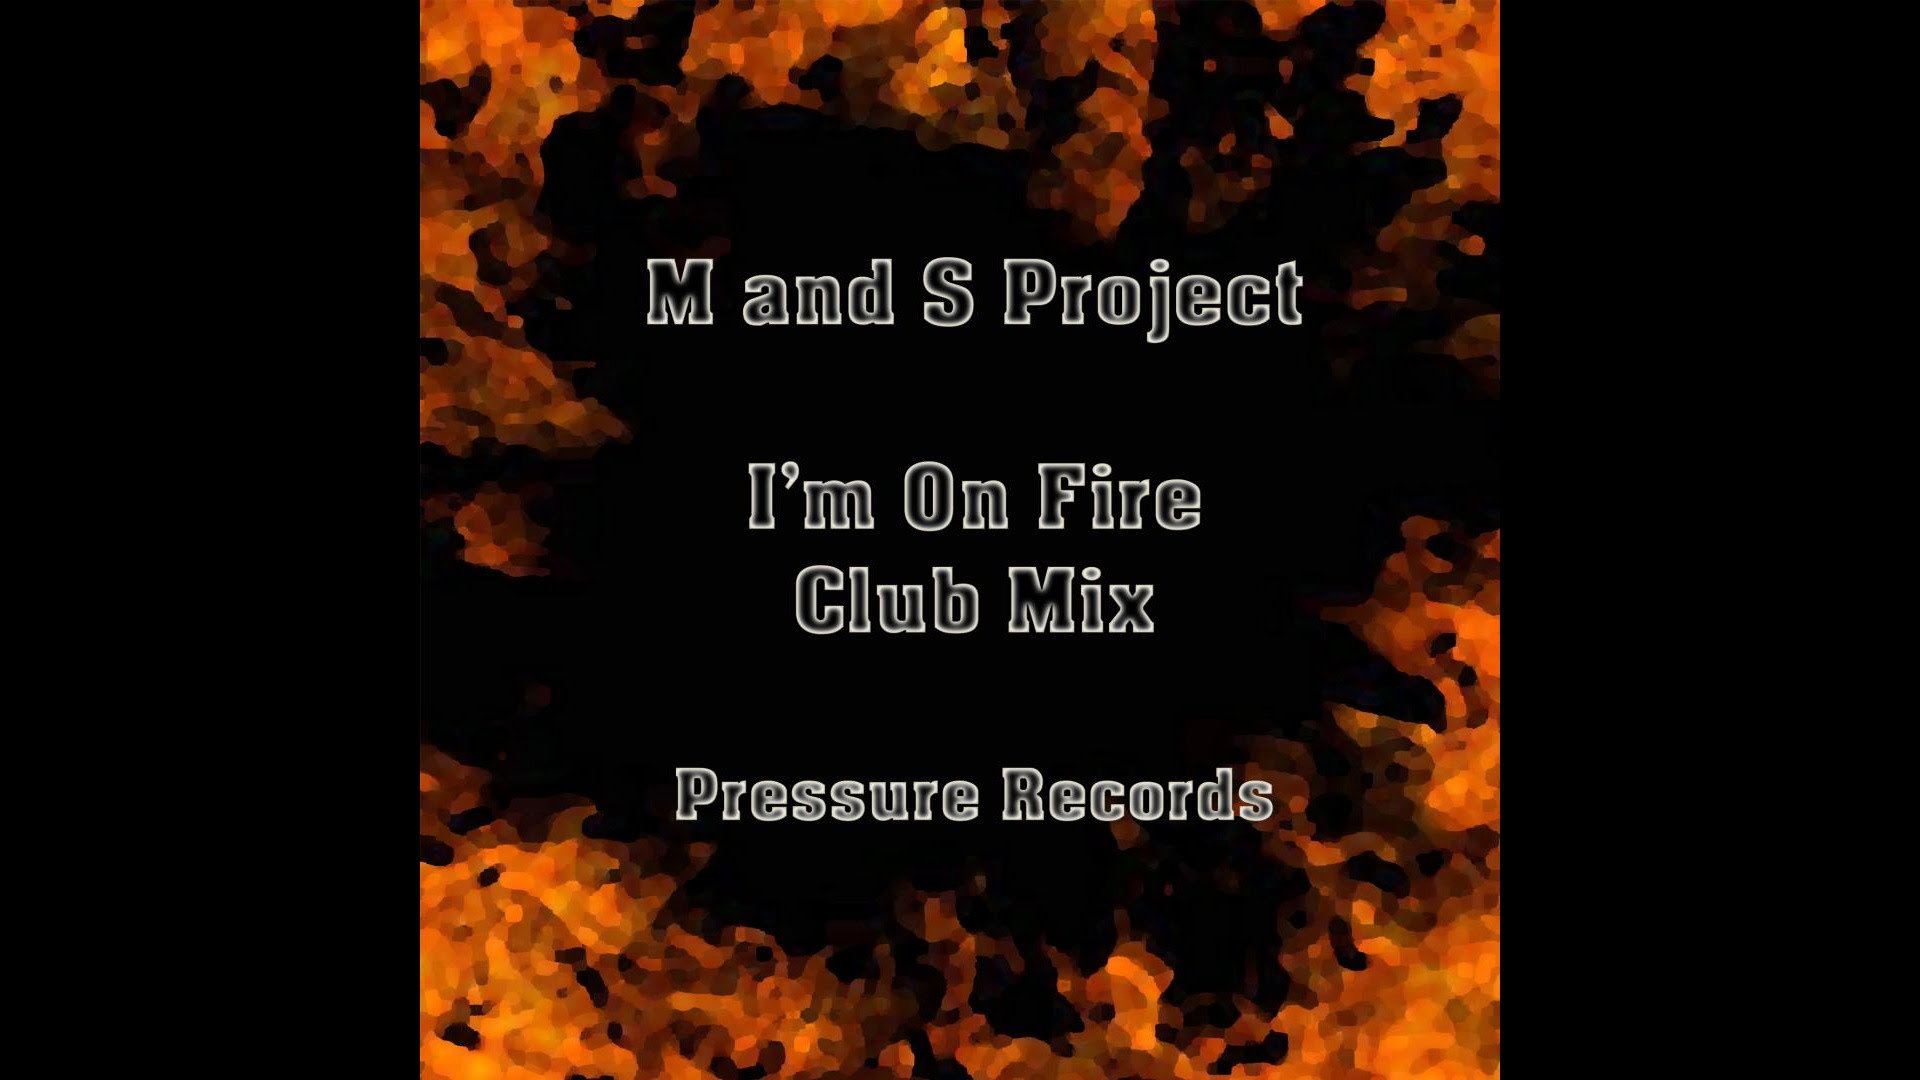 M and S Project - I'm On Fire (Club Mix) [House]